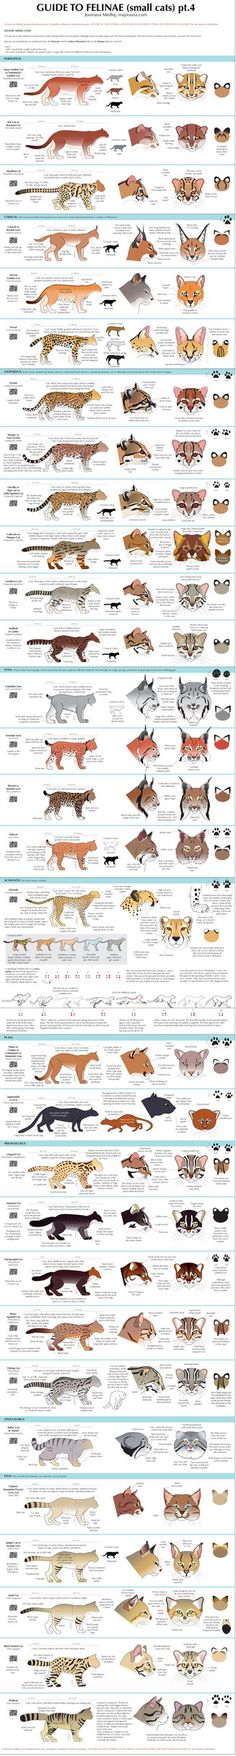 Guide to Little Cats by `majnouna on deviantART